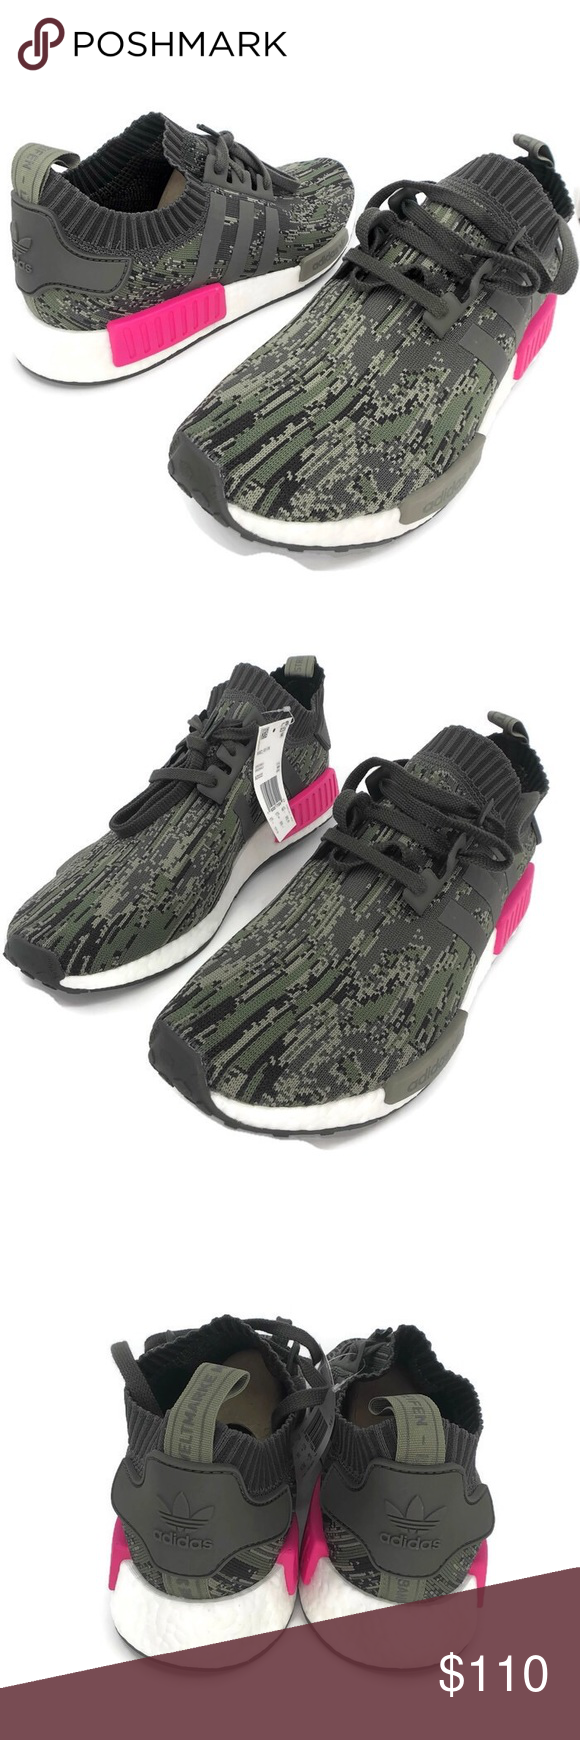 0e20e12a5e843 Adidas NMD R1 PK Utility Grey Camo Shock Pink S12  NEW WITH TAGS  Adidas